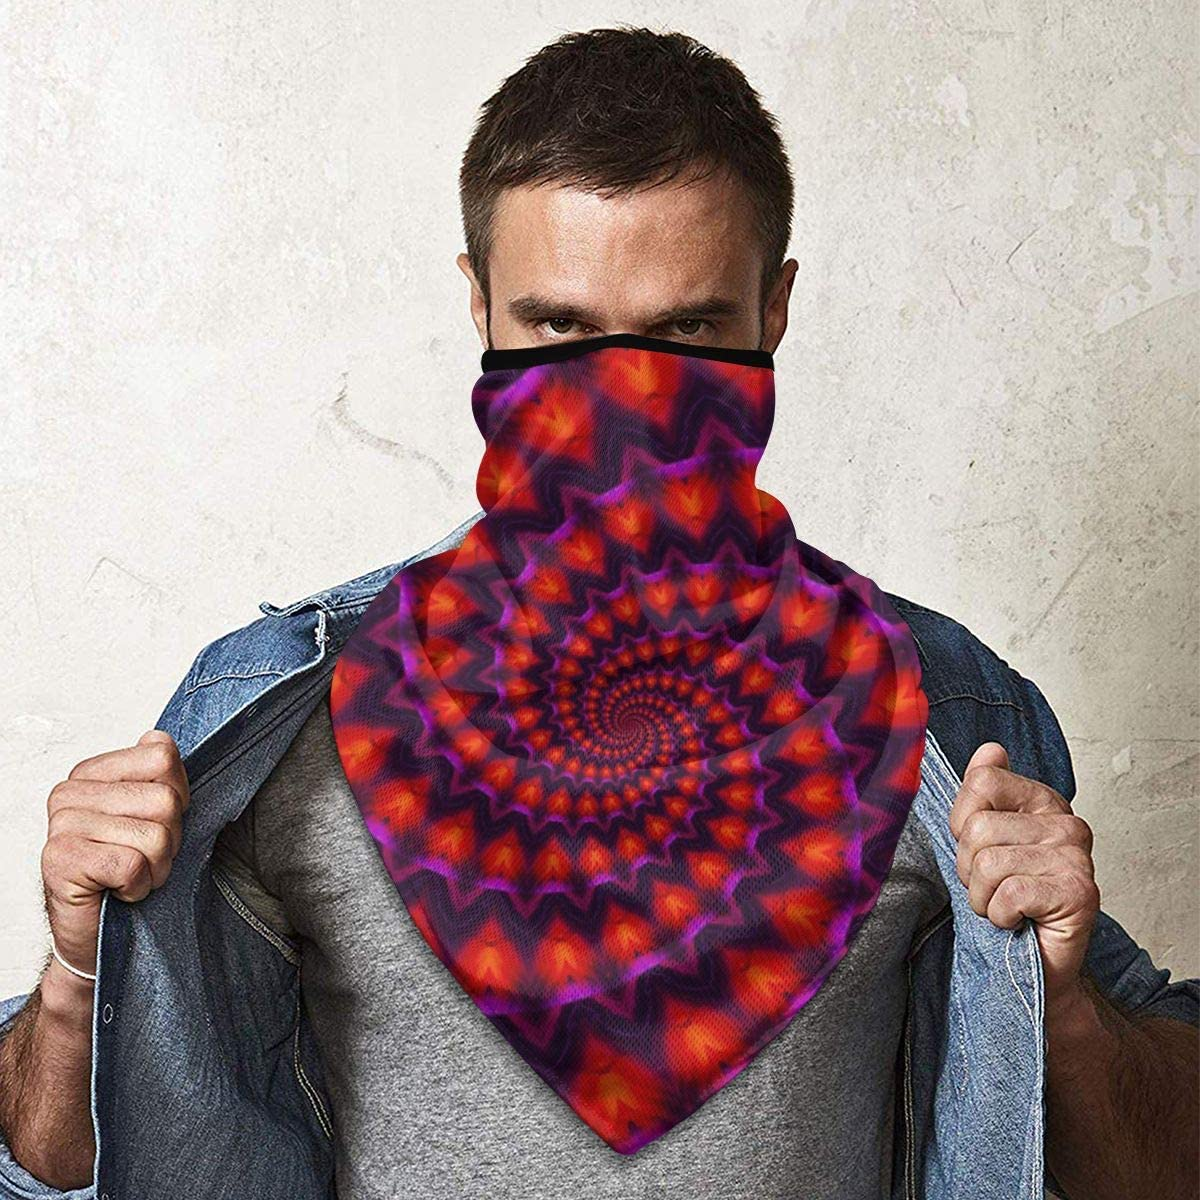 Power Spiral Kaleidoscope Red Violet Fractal Neck Gaiter Warmer Windproof Mask Balaclava Face Mask Sports Mask For Outdoor Men And Women Free UV Customized